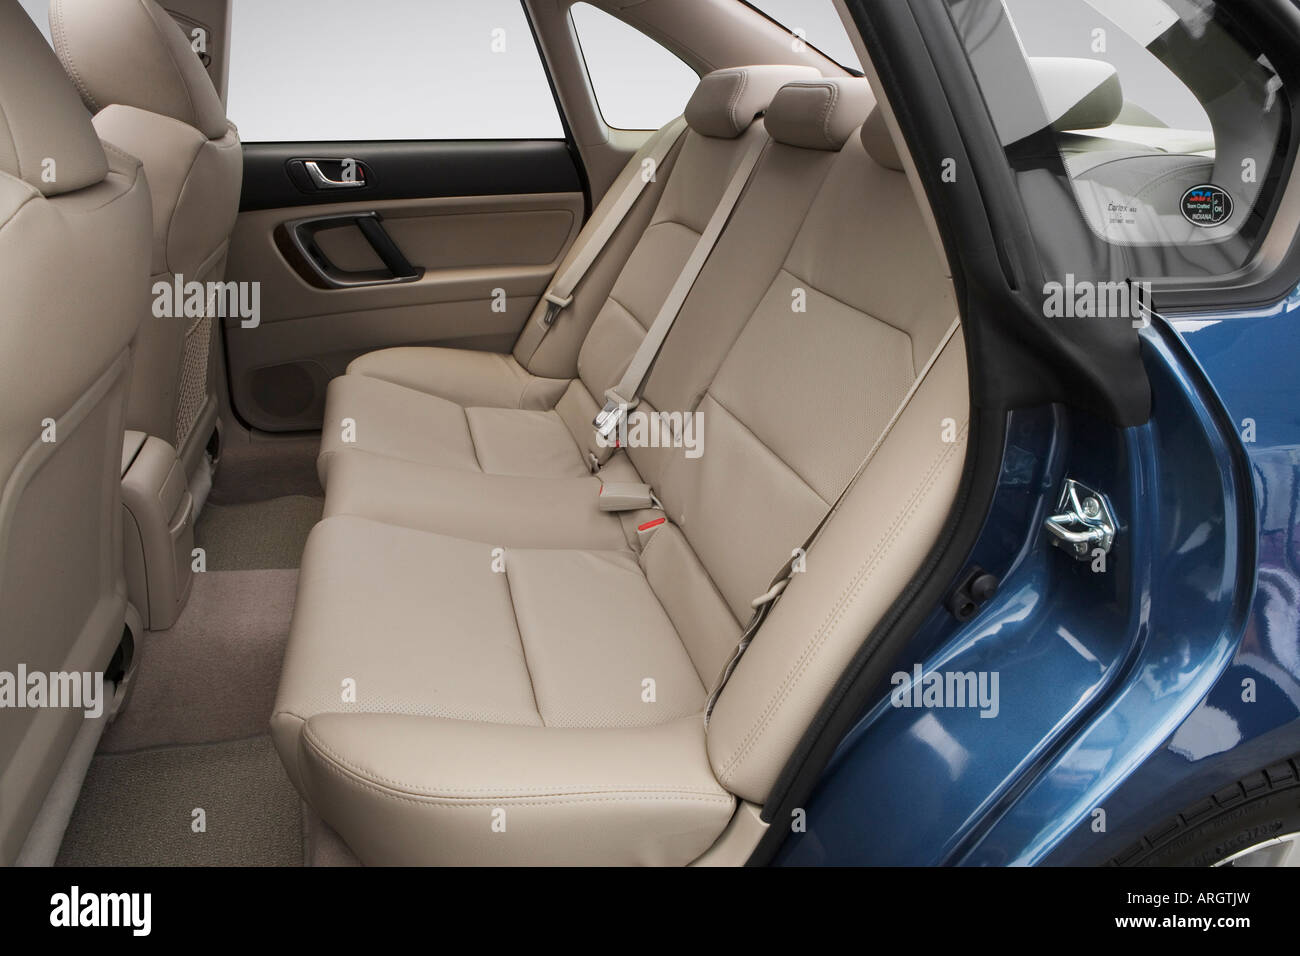 2008 subaru legacy 2.5 gt limited in blue - rear seats stock photo